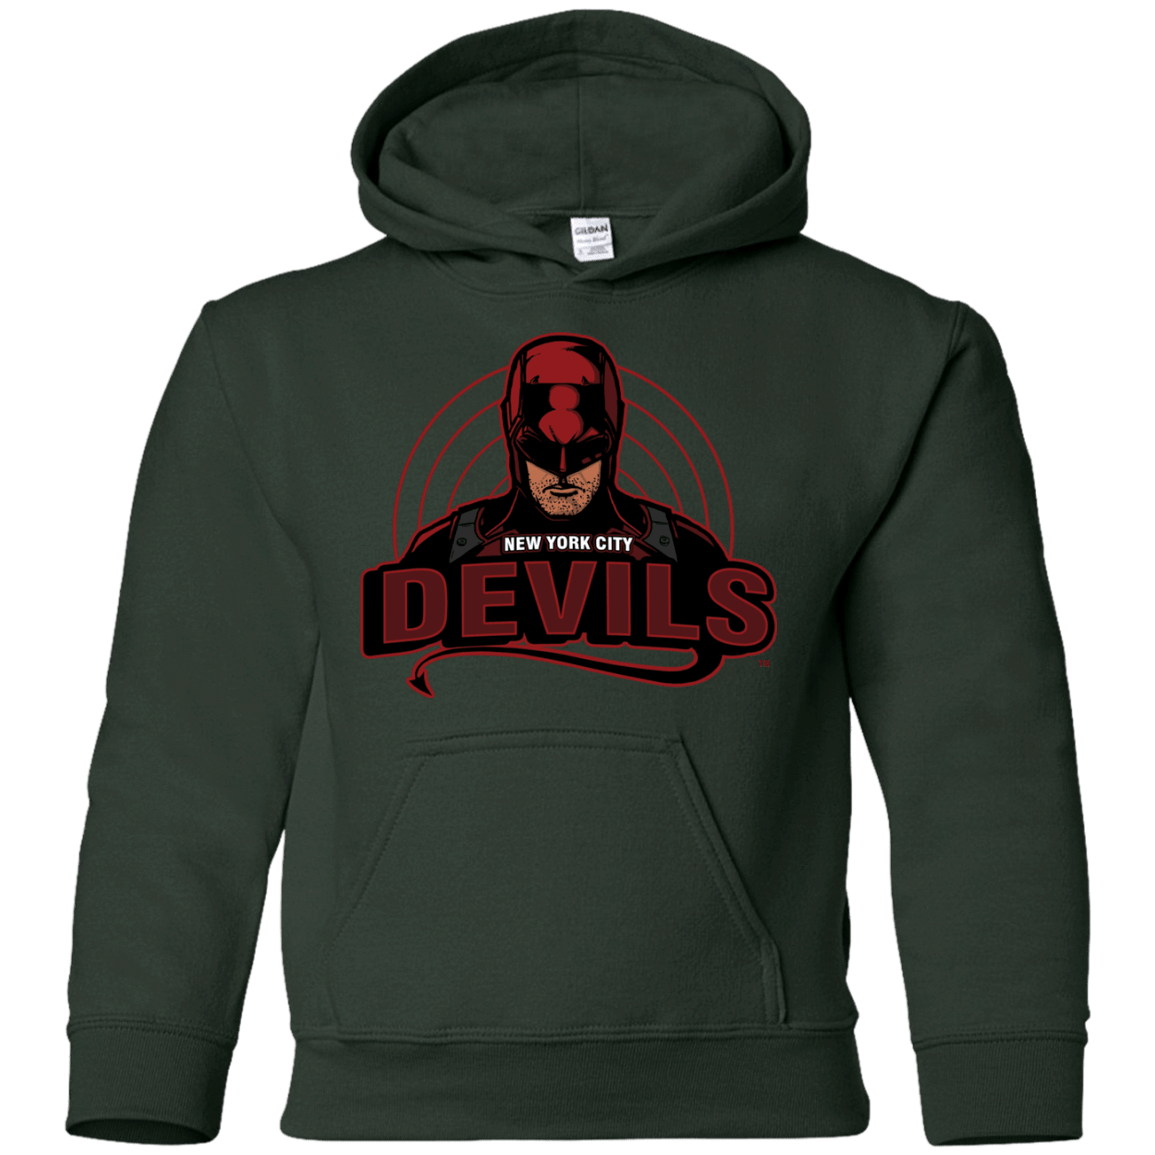 Sweatshirts Forest Green / YS NYC Devils Youth Hoodie